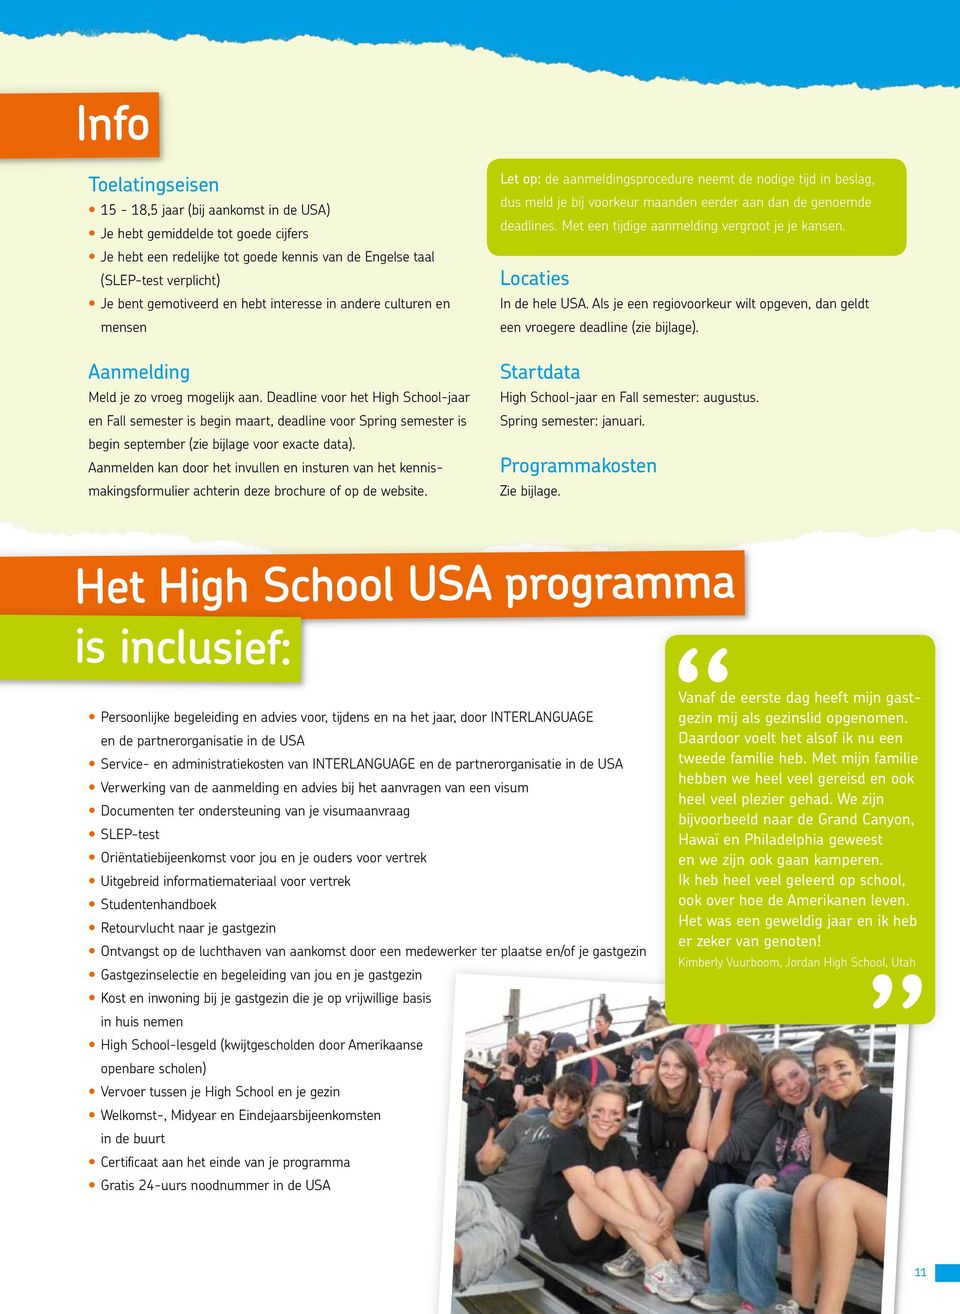 Deadline voor het High School-jaar en Fall semester is begin maart, deadline voor Spring semester is begin september (zie bijlage voor exacte data).